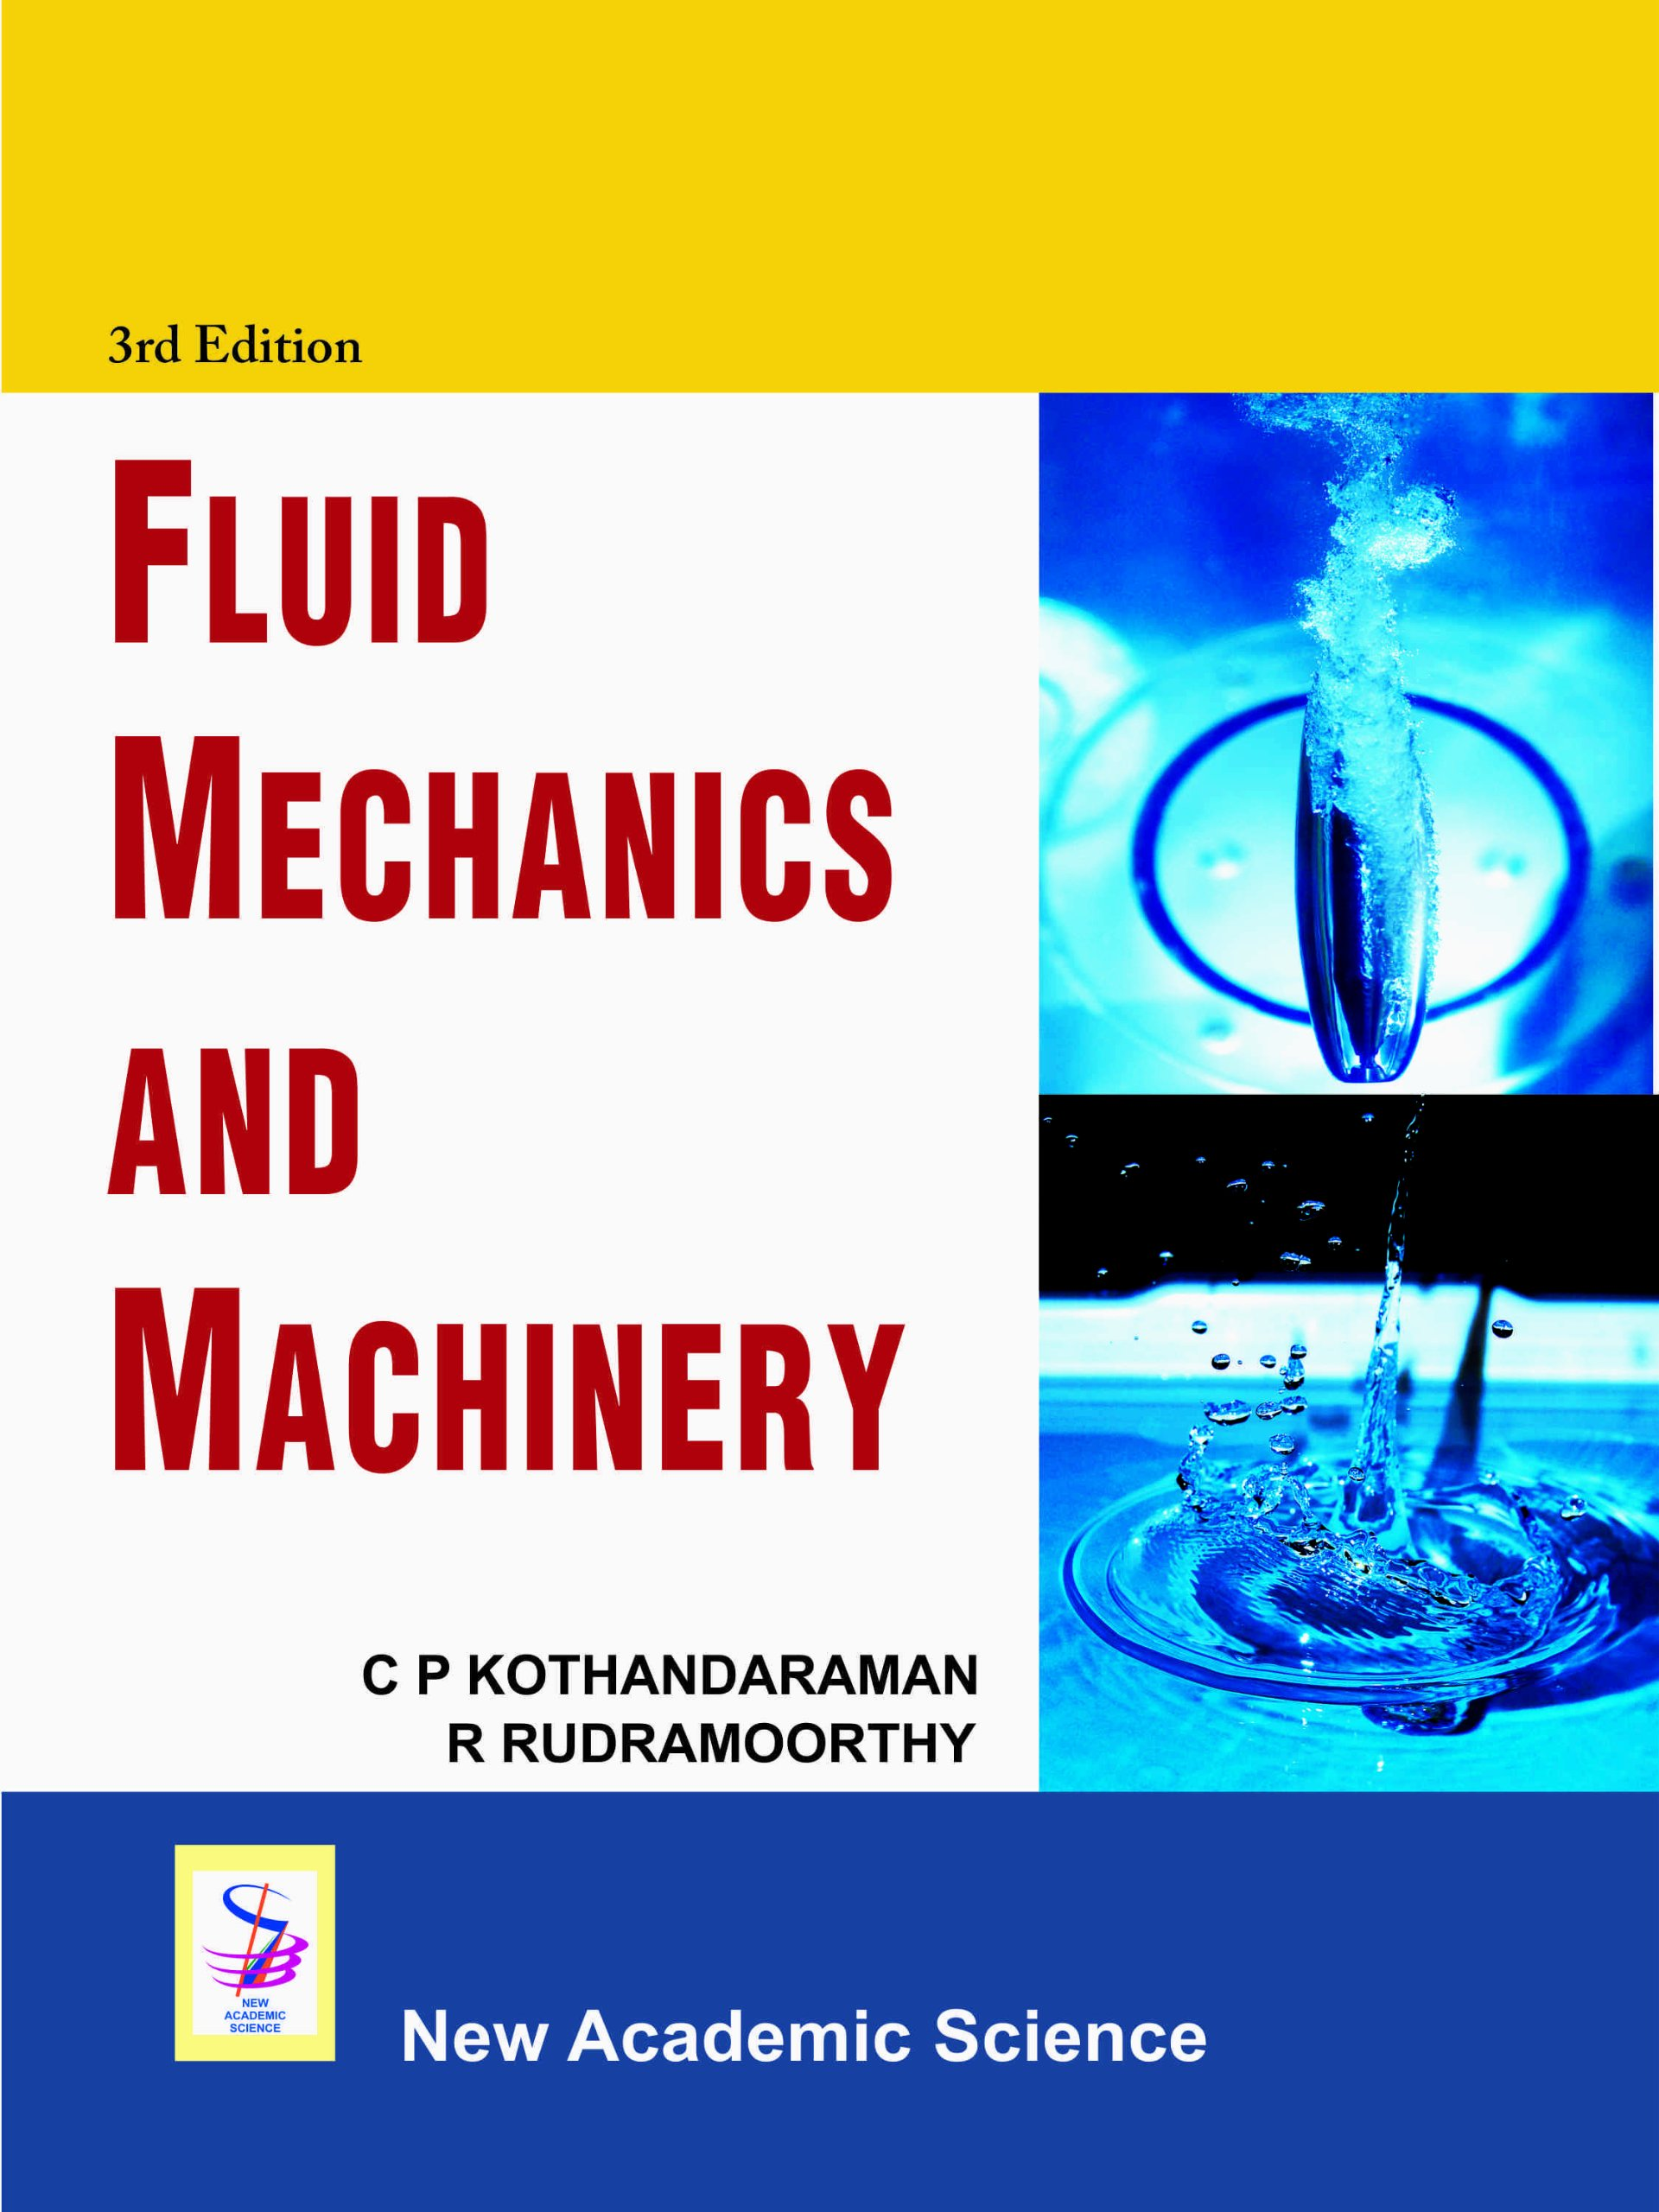 fluid mechanics and machinery c p kothandaraman r rudramoorthy